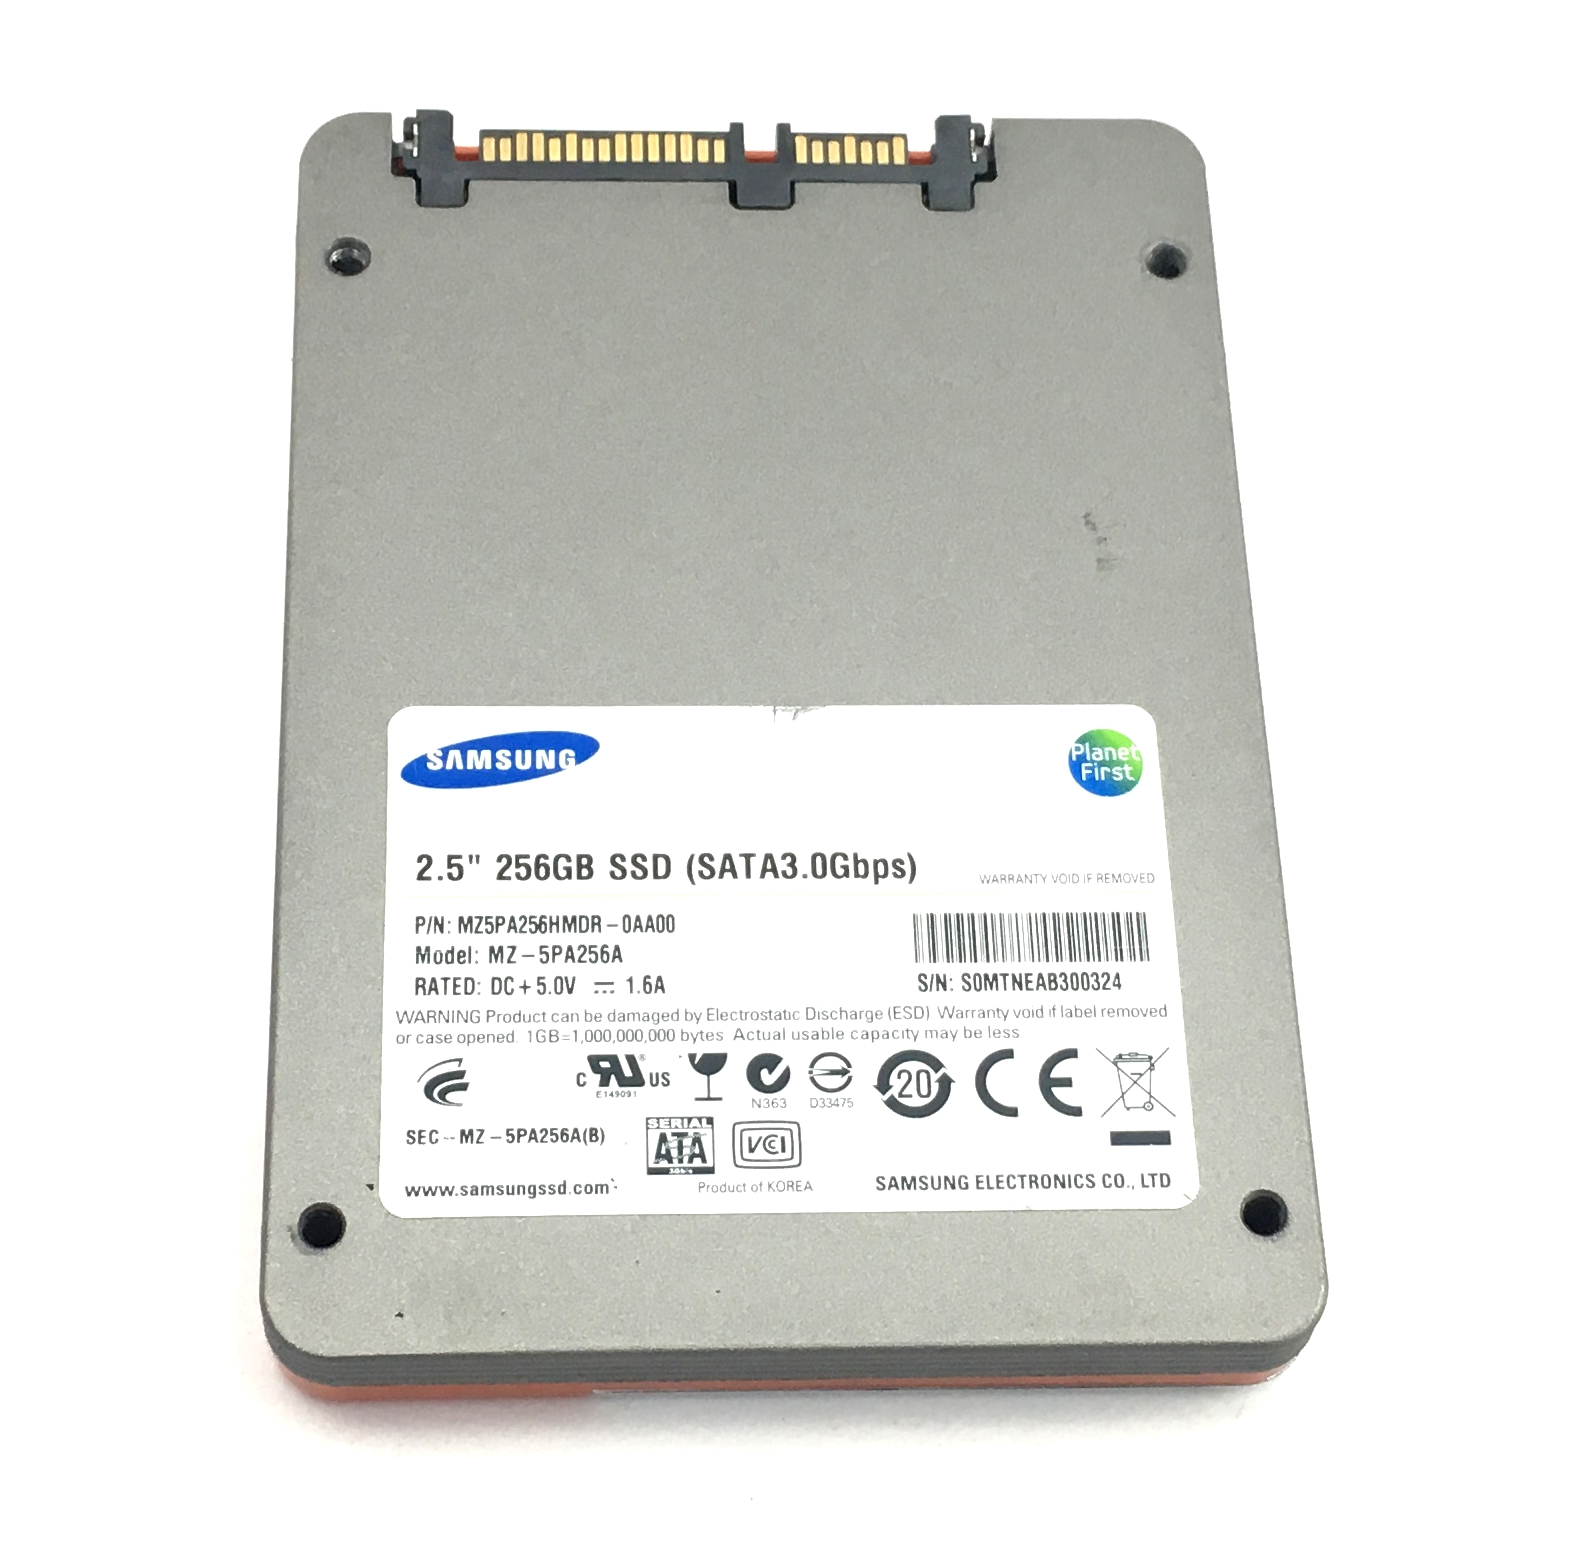 SAMSUNG 470 256GB 3GBPS SATA 2.5'' SSD SOLID STATE DRIVE (MZ5PA256HMDR-0AA00)